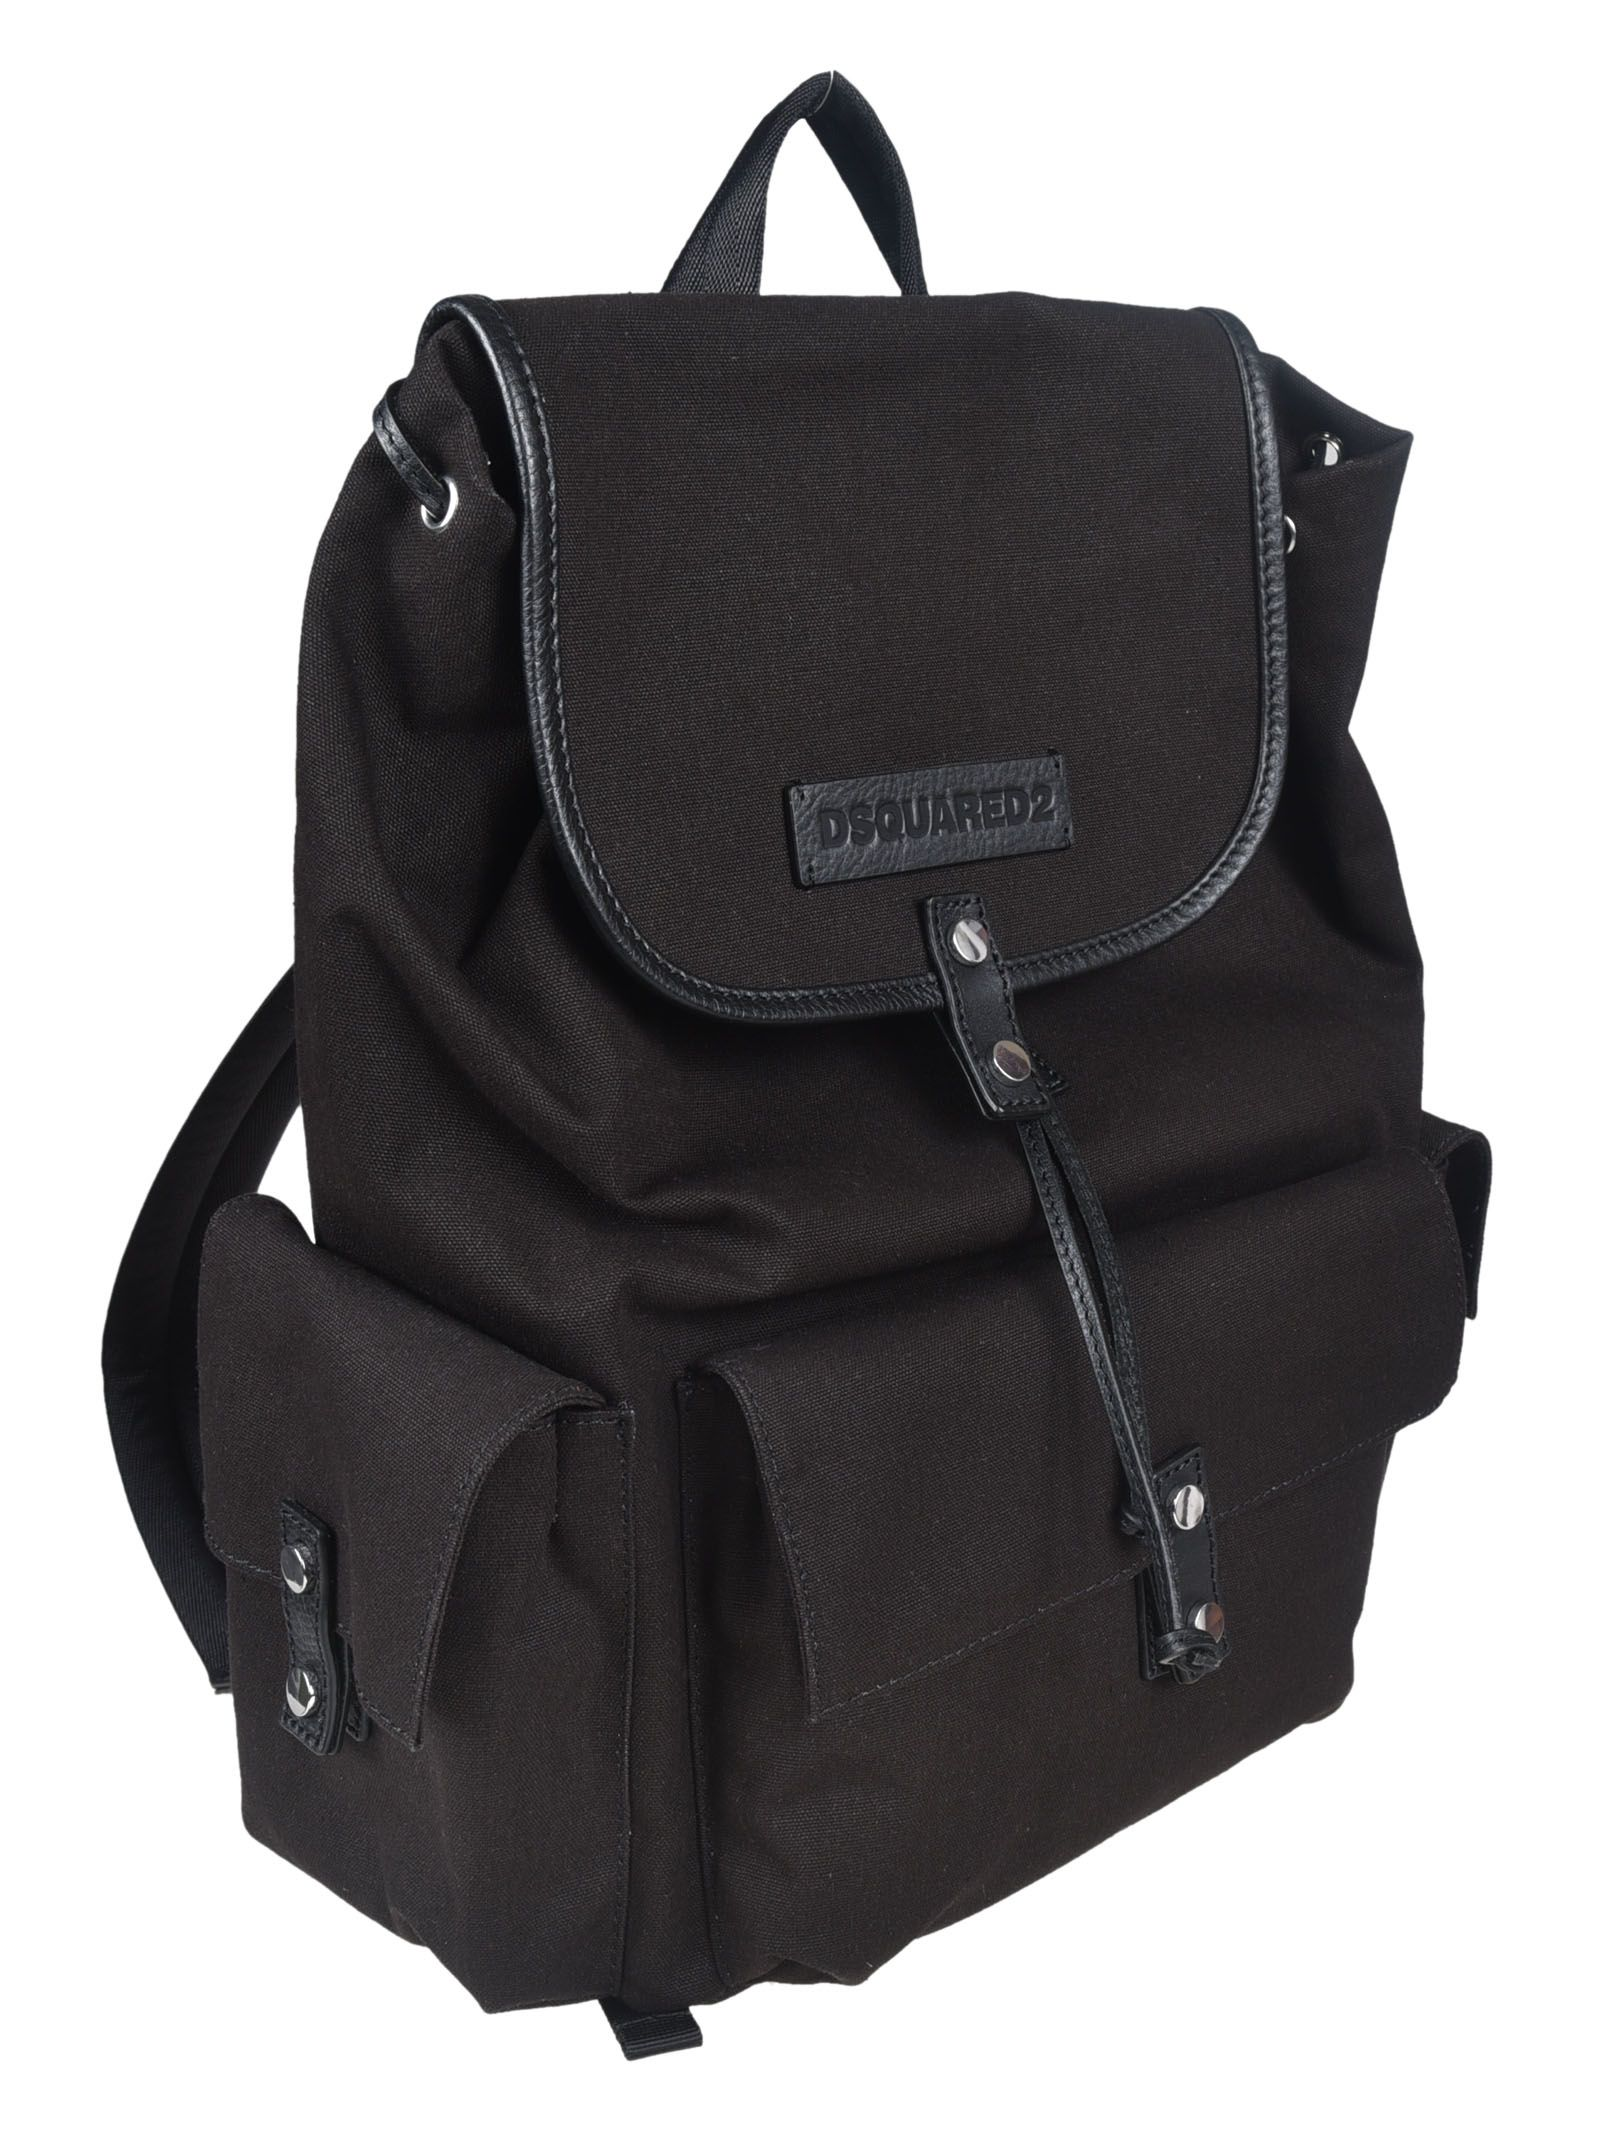 Clearance Cheapest Price military backpack - Black Dsquared2 Outlet View TKw8DLU3